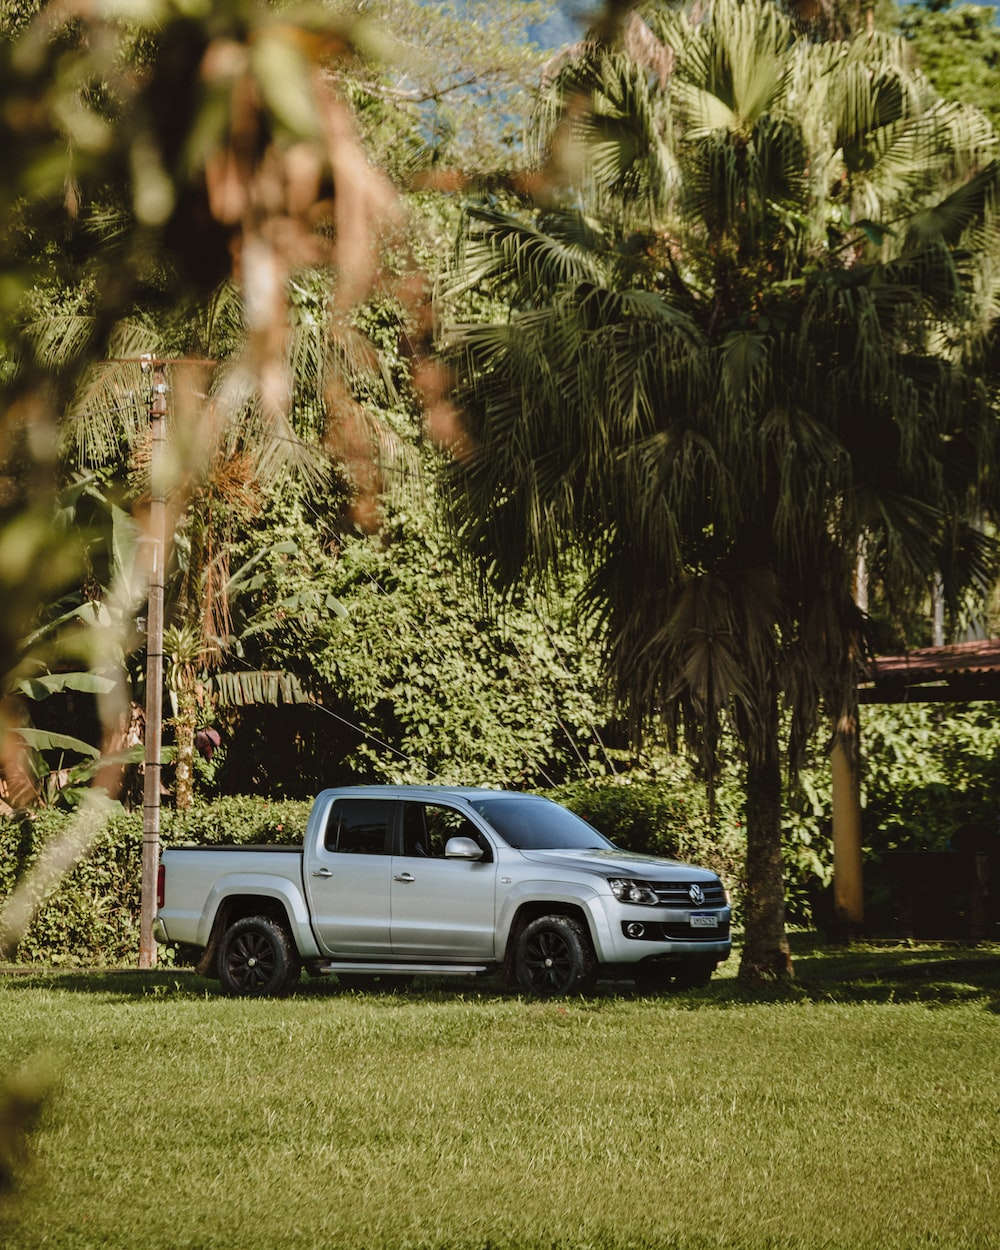 white and blue chevrolet crew cab pickup truck parked on green grass field during daytime